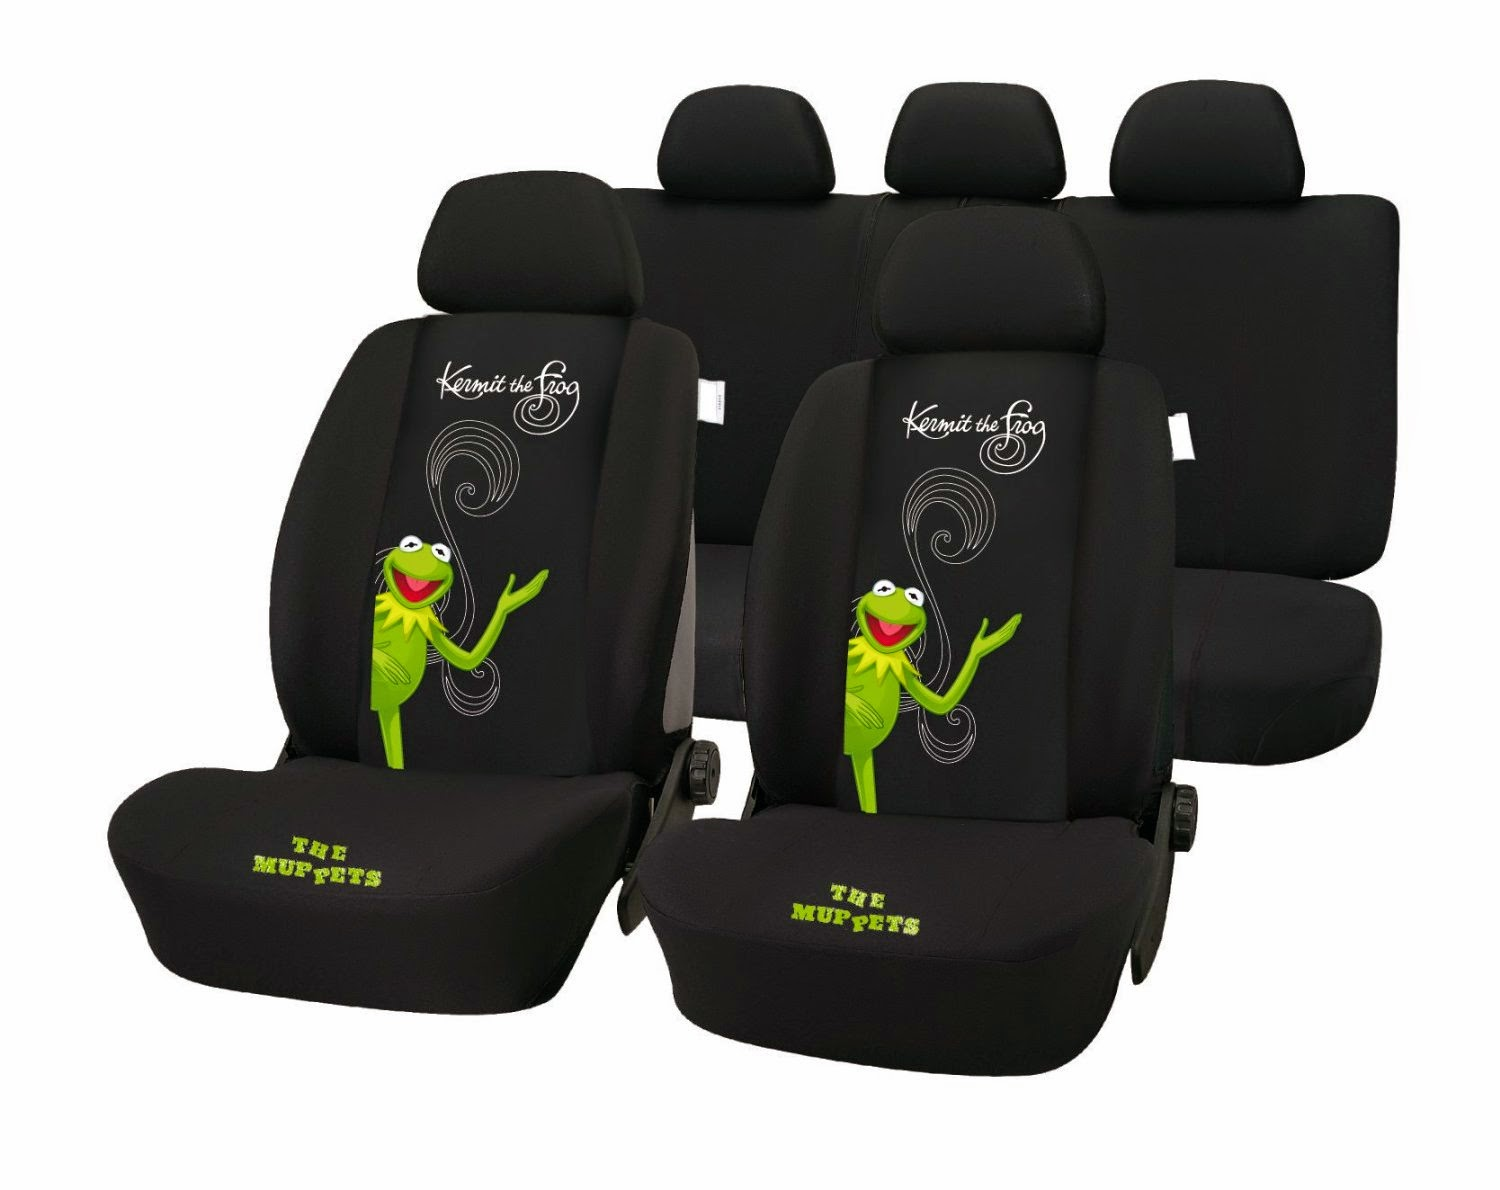 Kermit Frog Car Seat Covers